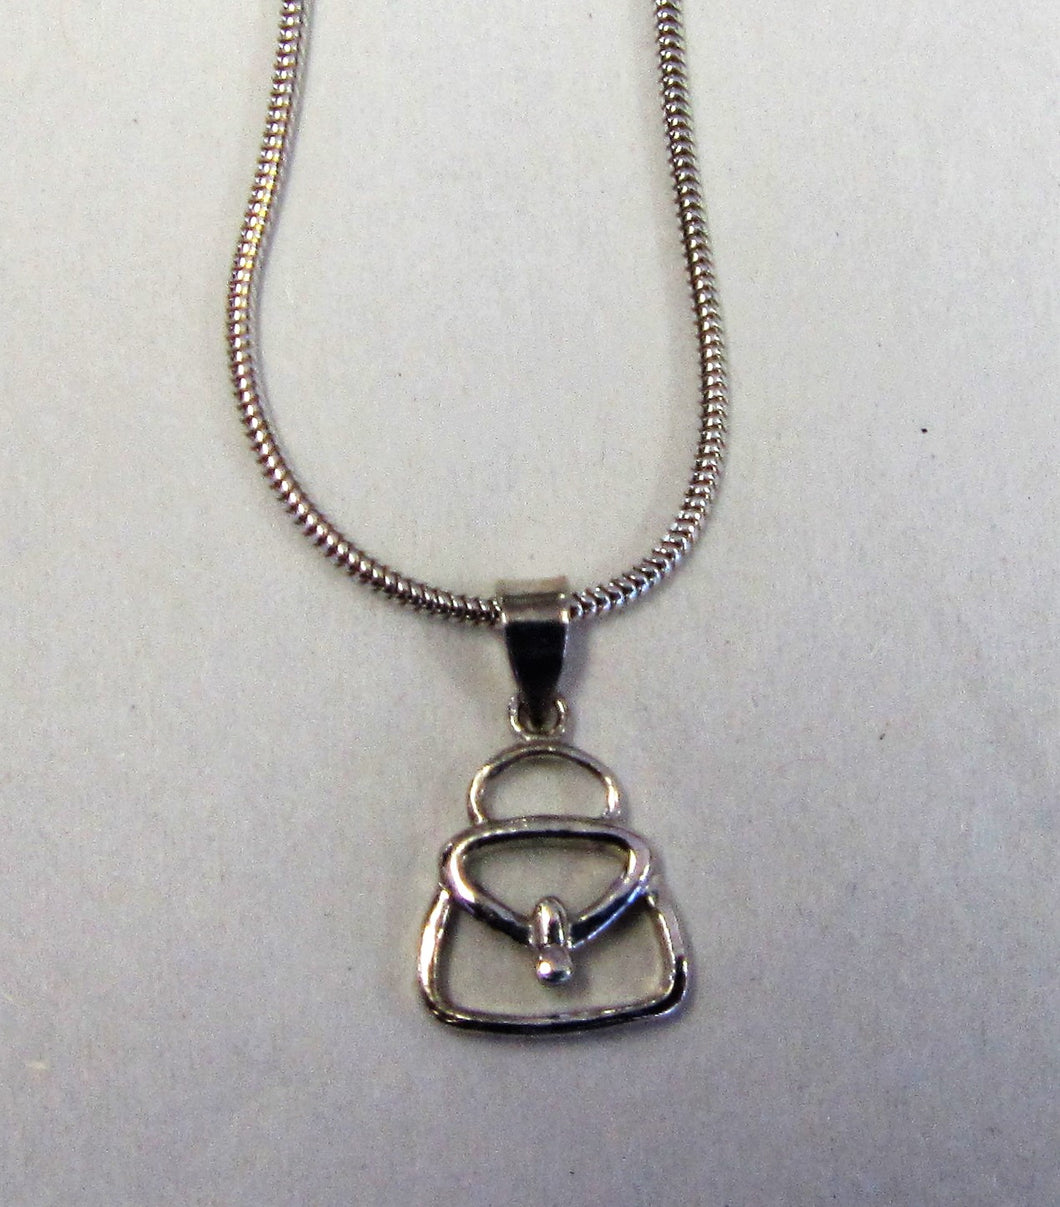 Handbag Silver pendent on sterling silver necklace